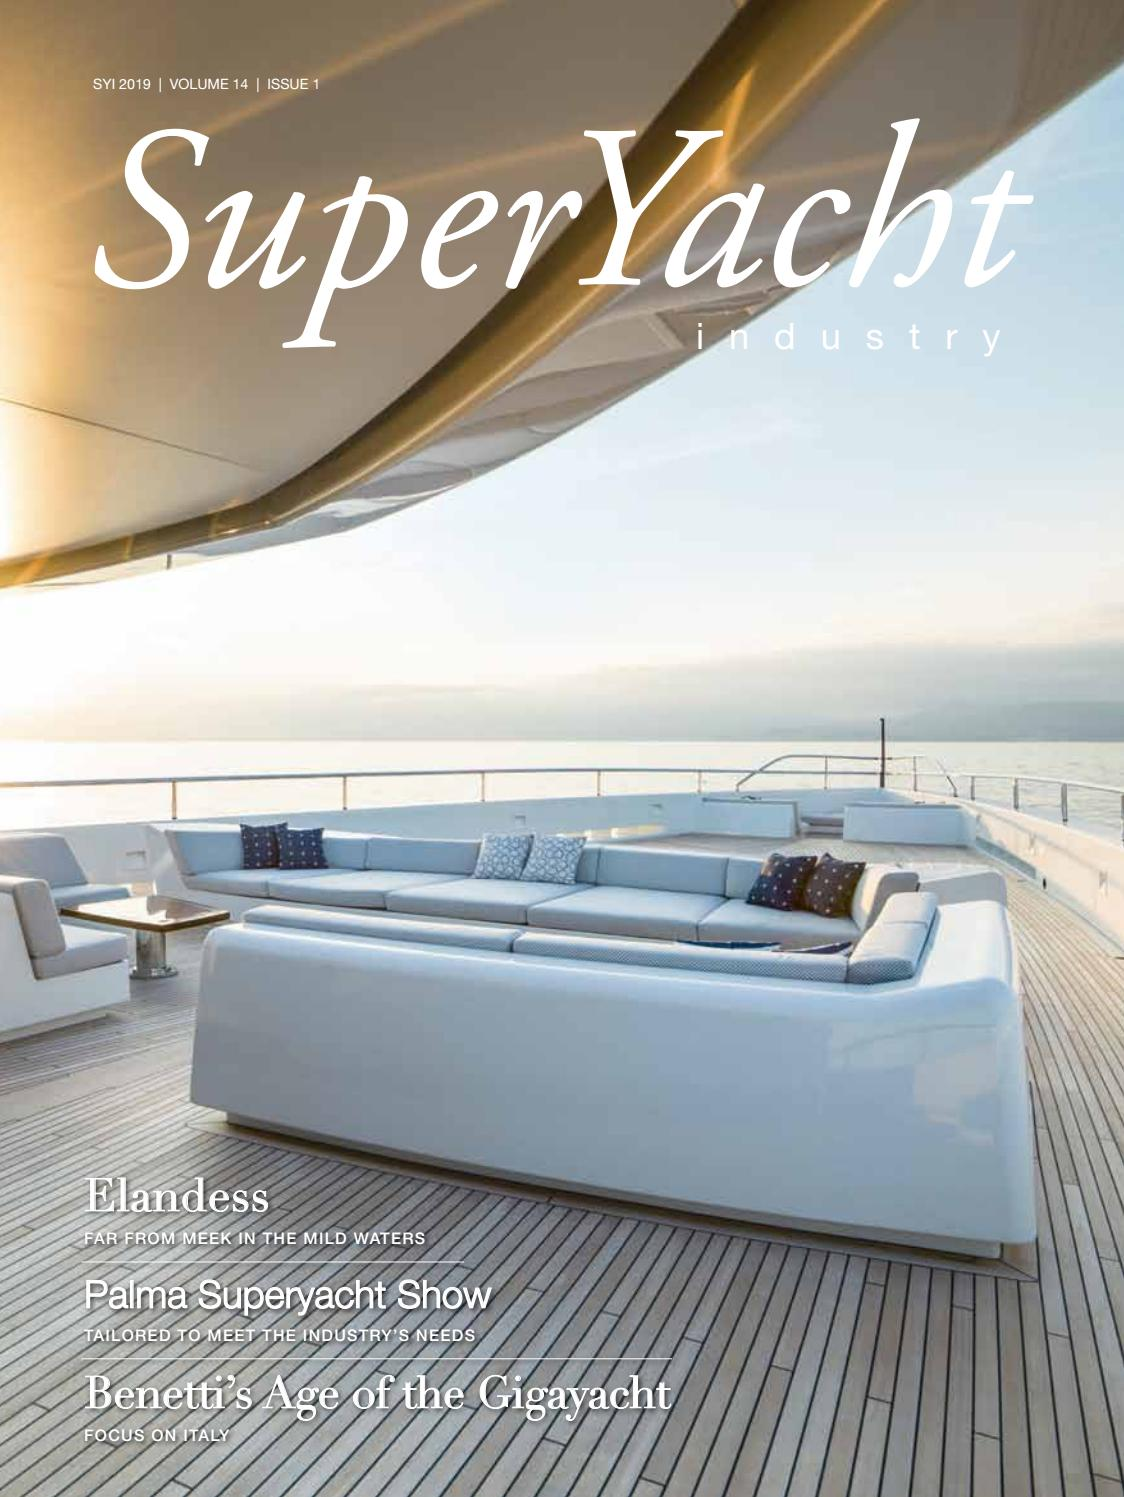 a i s spectacular september interior design s hall interior design pr SuperYacht Industry 2019 Issue 1 by Yellow u0026 Finch Publishers - issuu